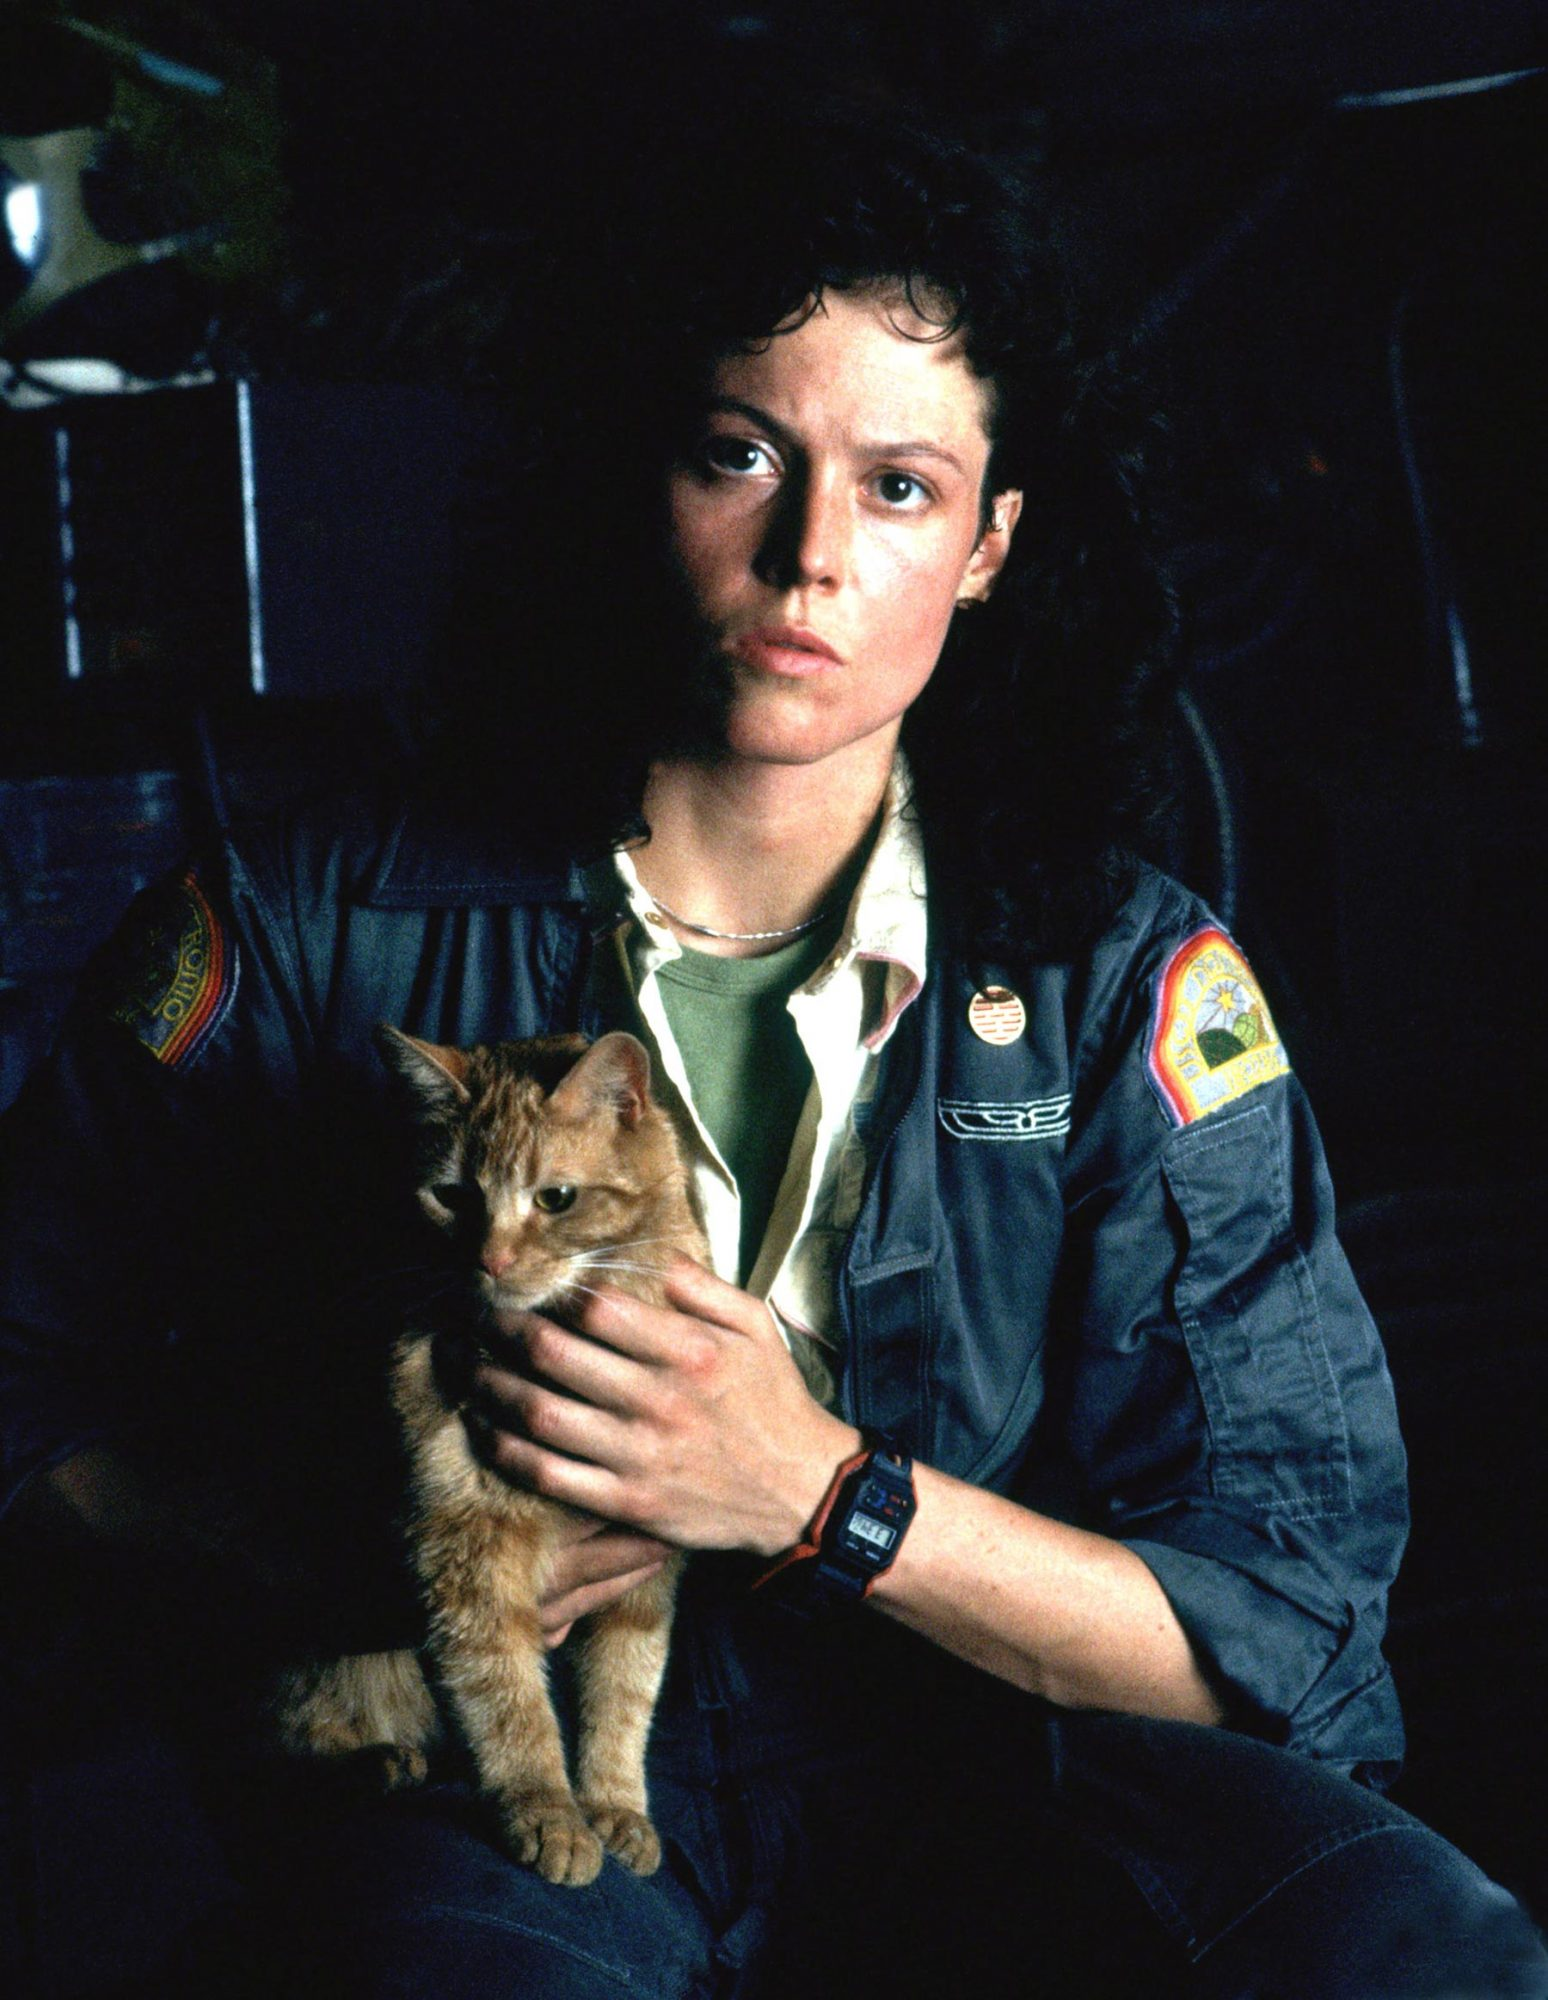 ALIEN, Sigourney Weaver, 1979, TM & Copyright (c) 20th Century Fox Film Corp. All rights reserved.